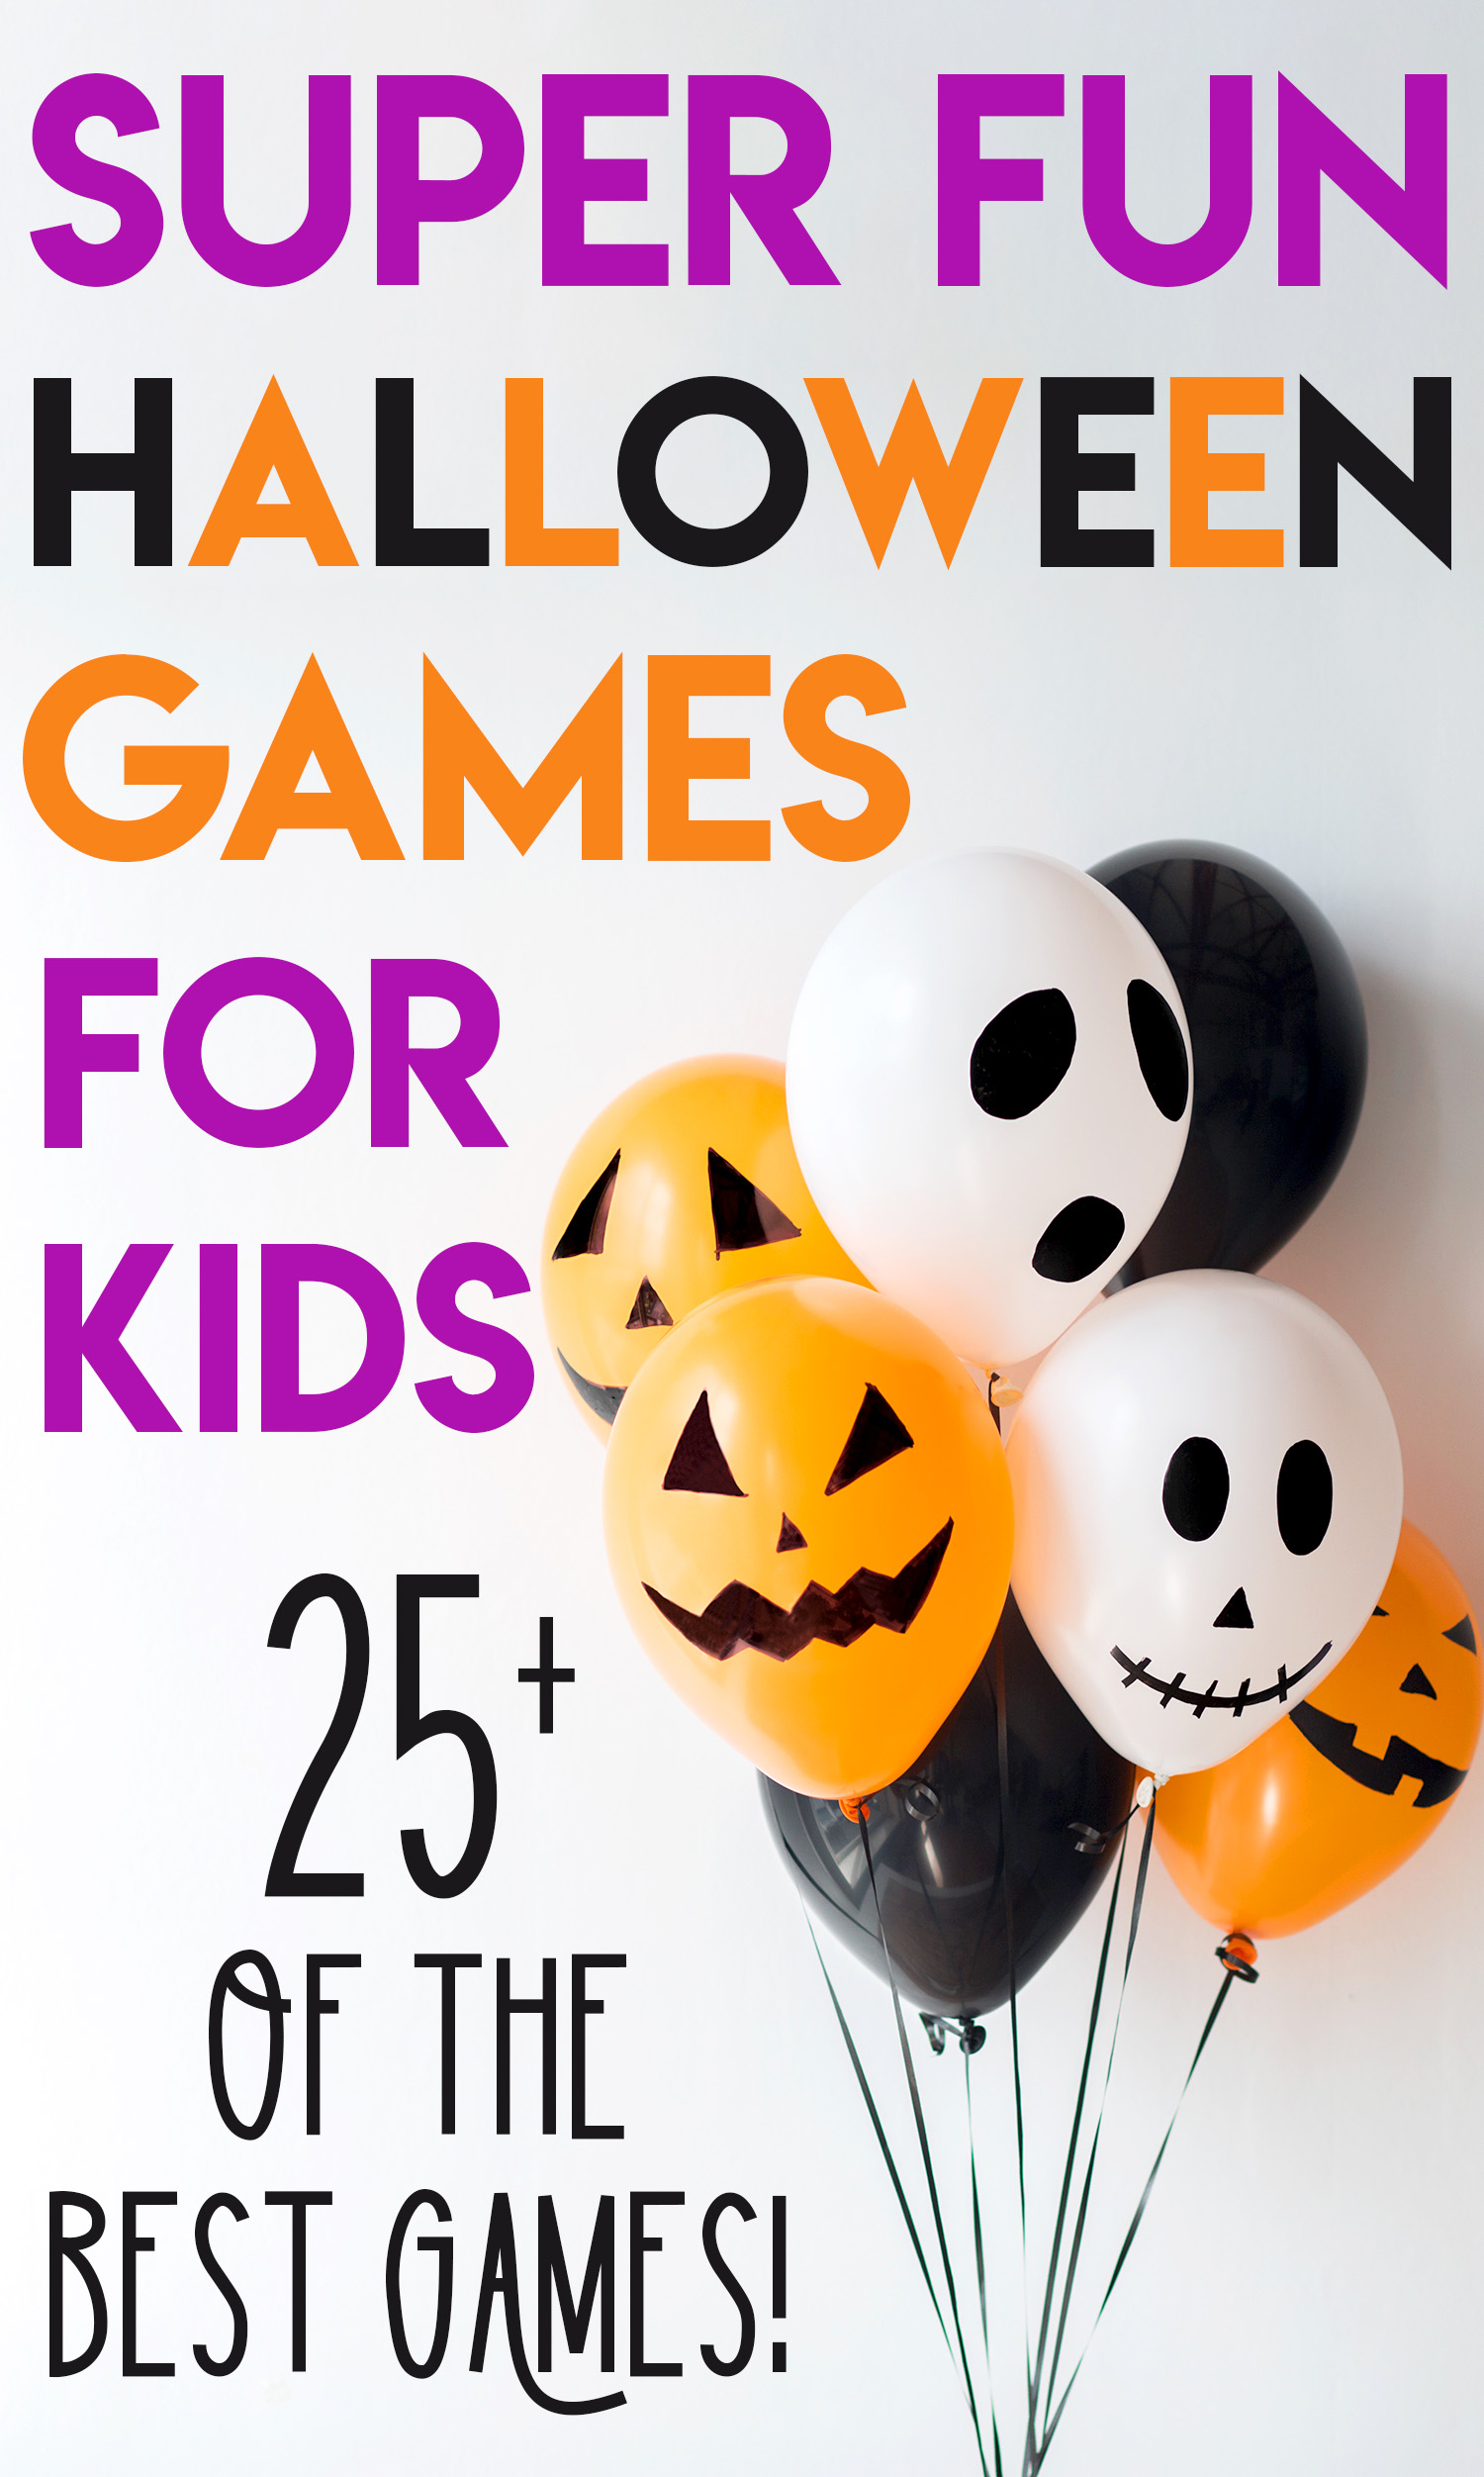 Fun Halloween Games for Kids - Halloween Party Games for Kids